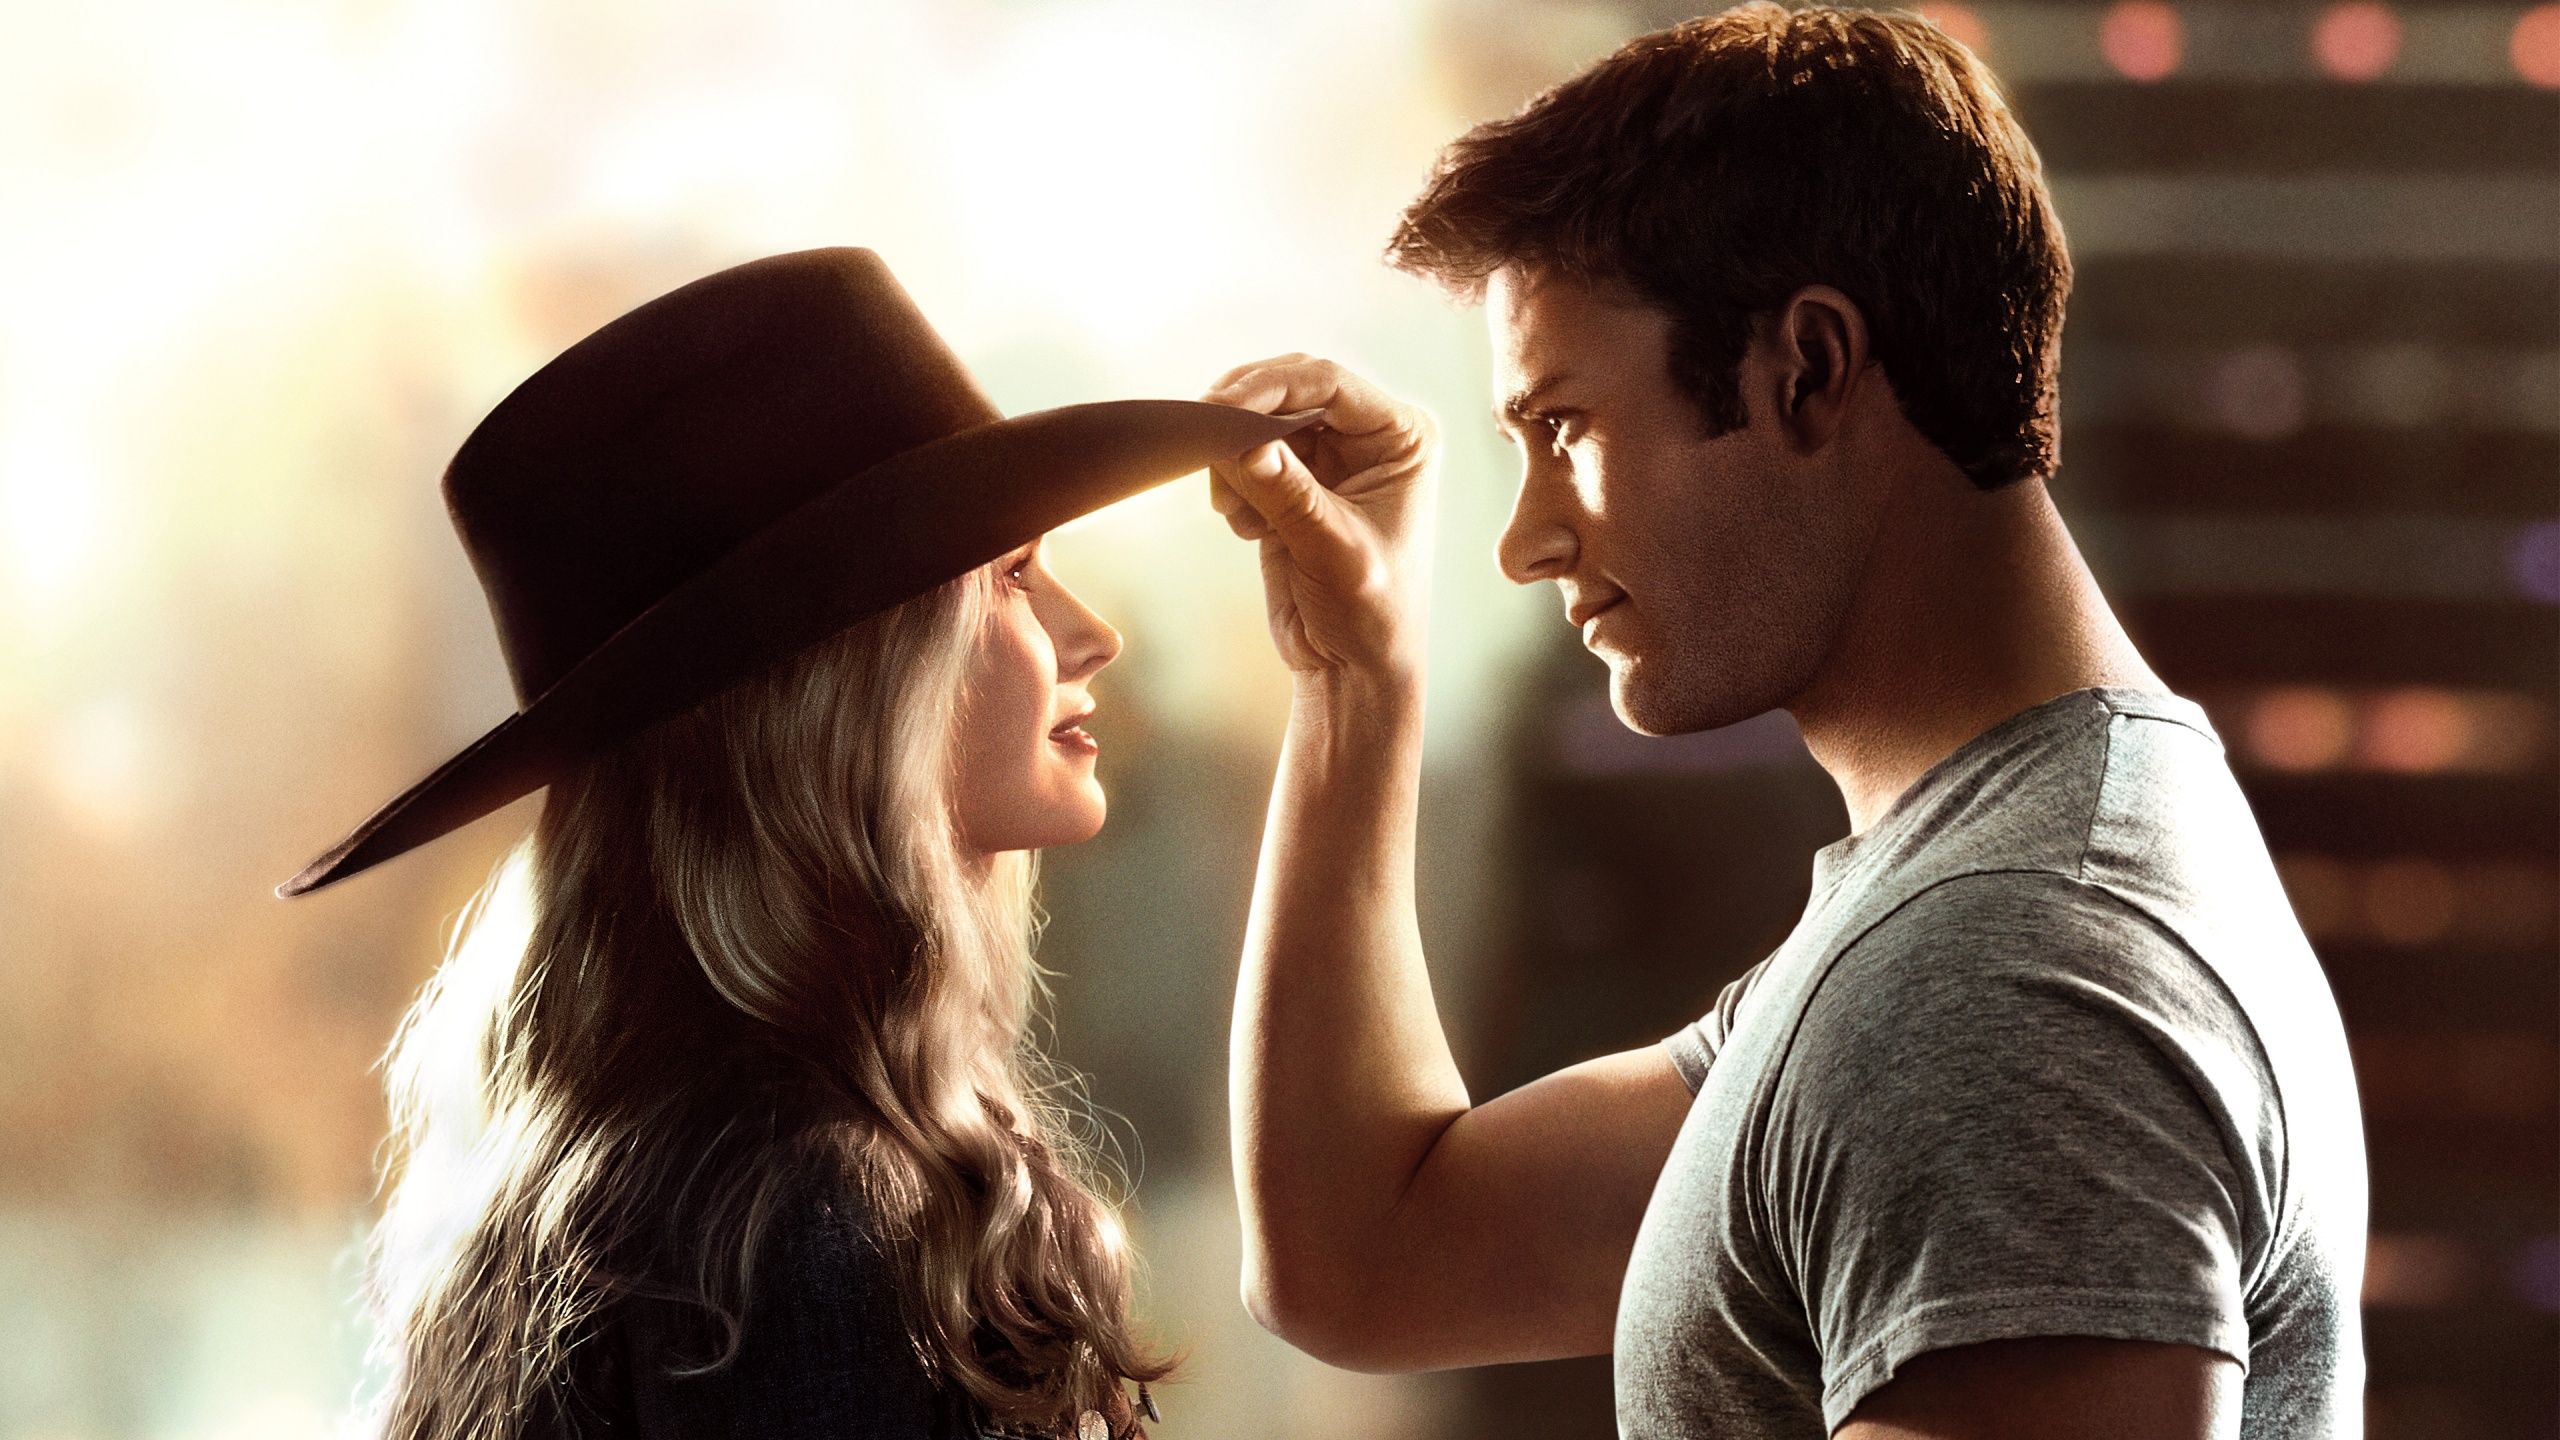 the longest ride movie wallpapers in jpg format for free download